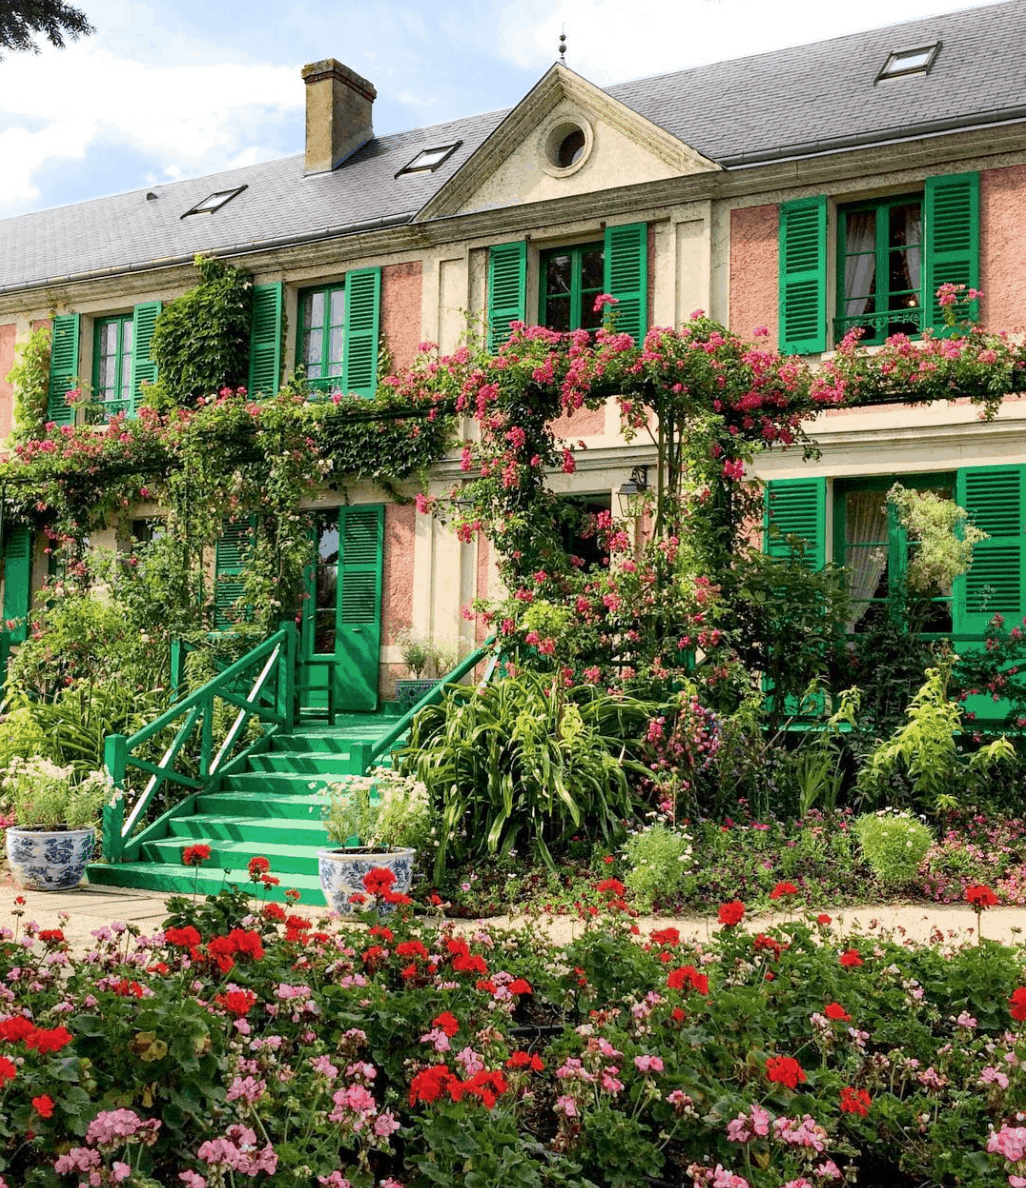 Paris To Giverny Day Trip - Claude Monet's house and gardens